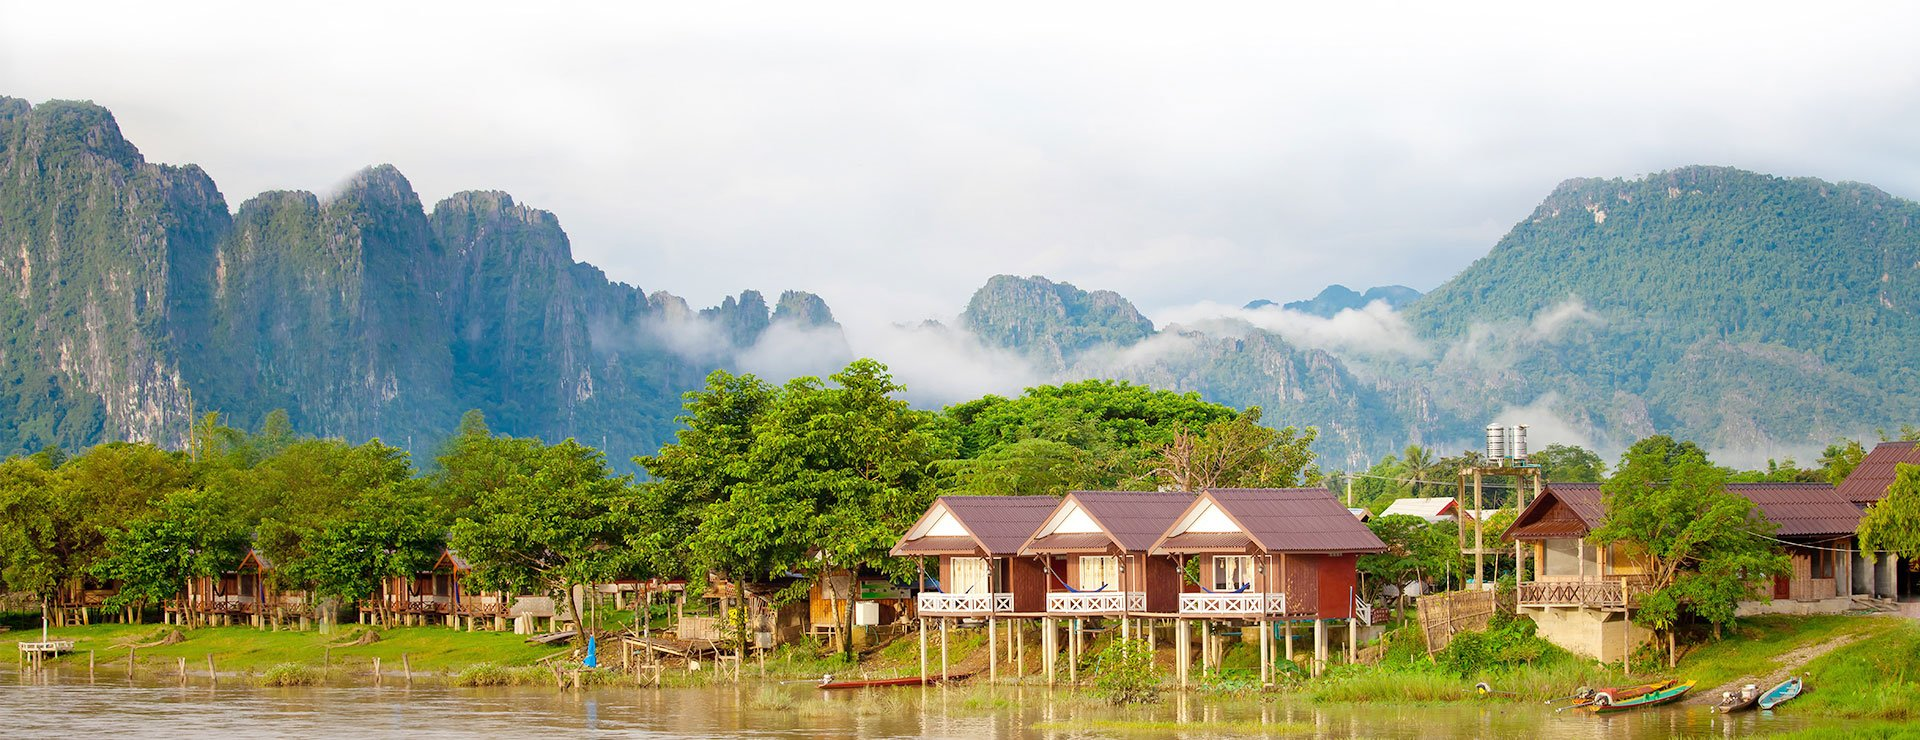 Don't want to ruin a Laos trip, remember not to do these things